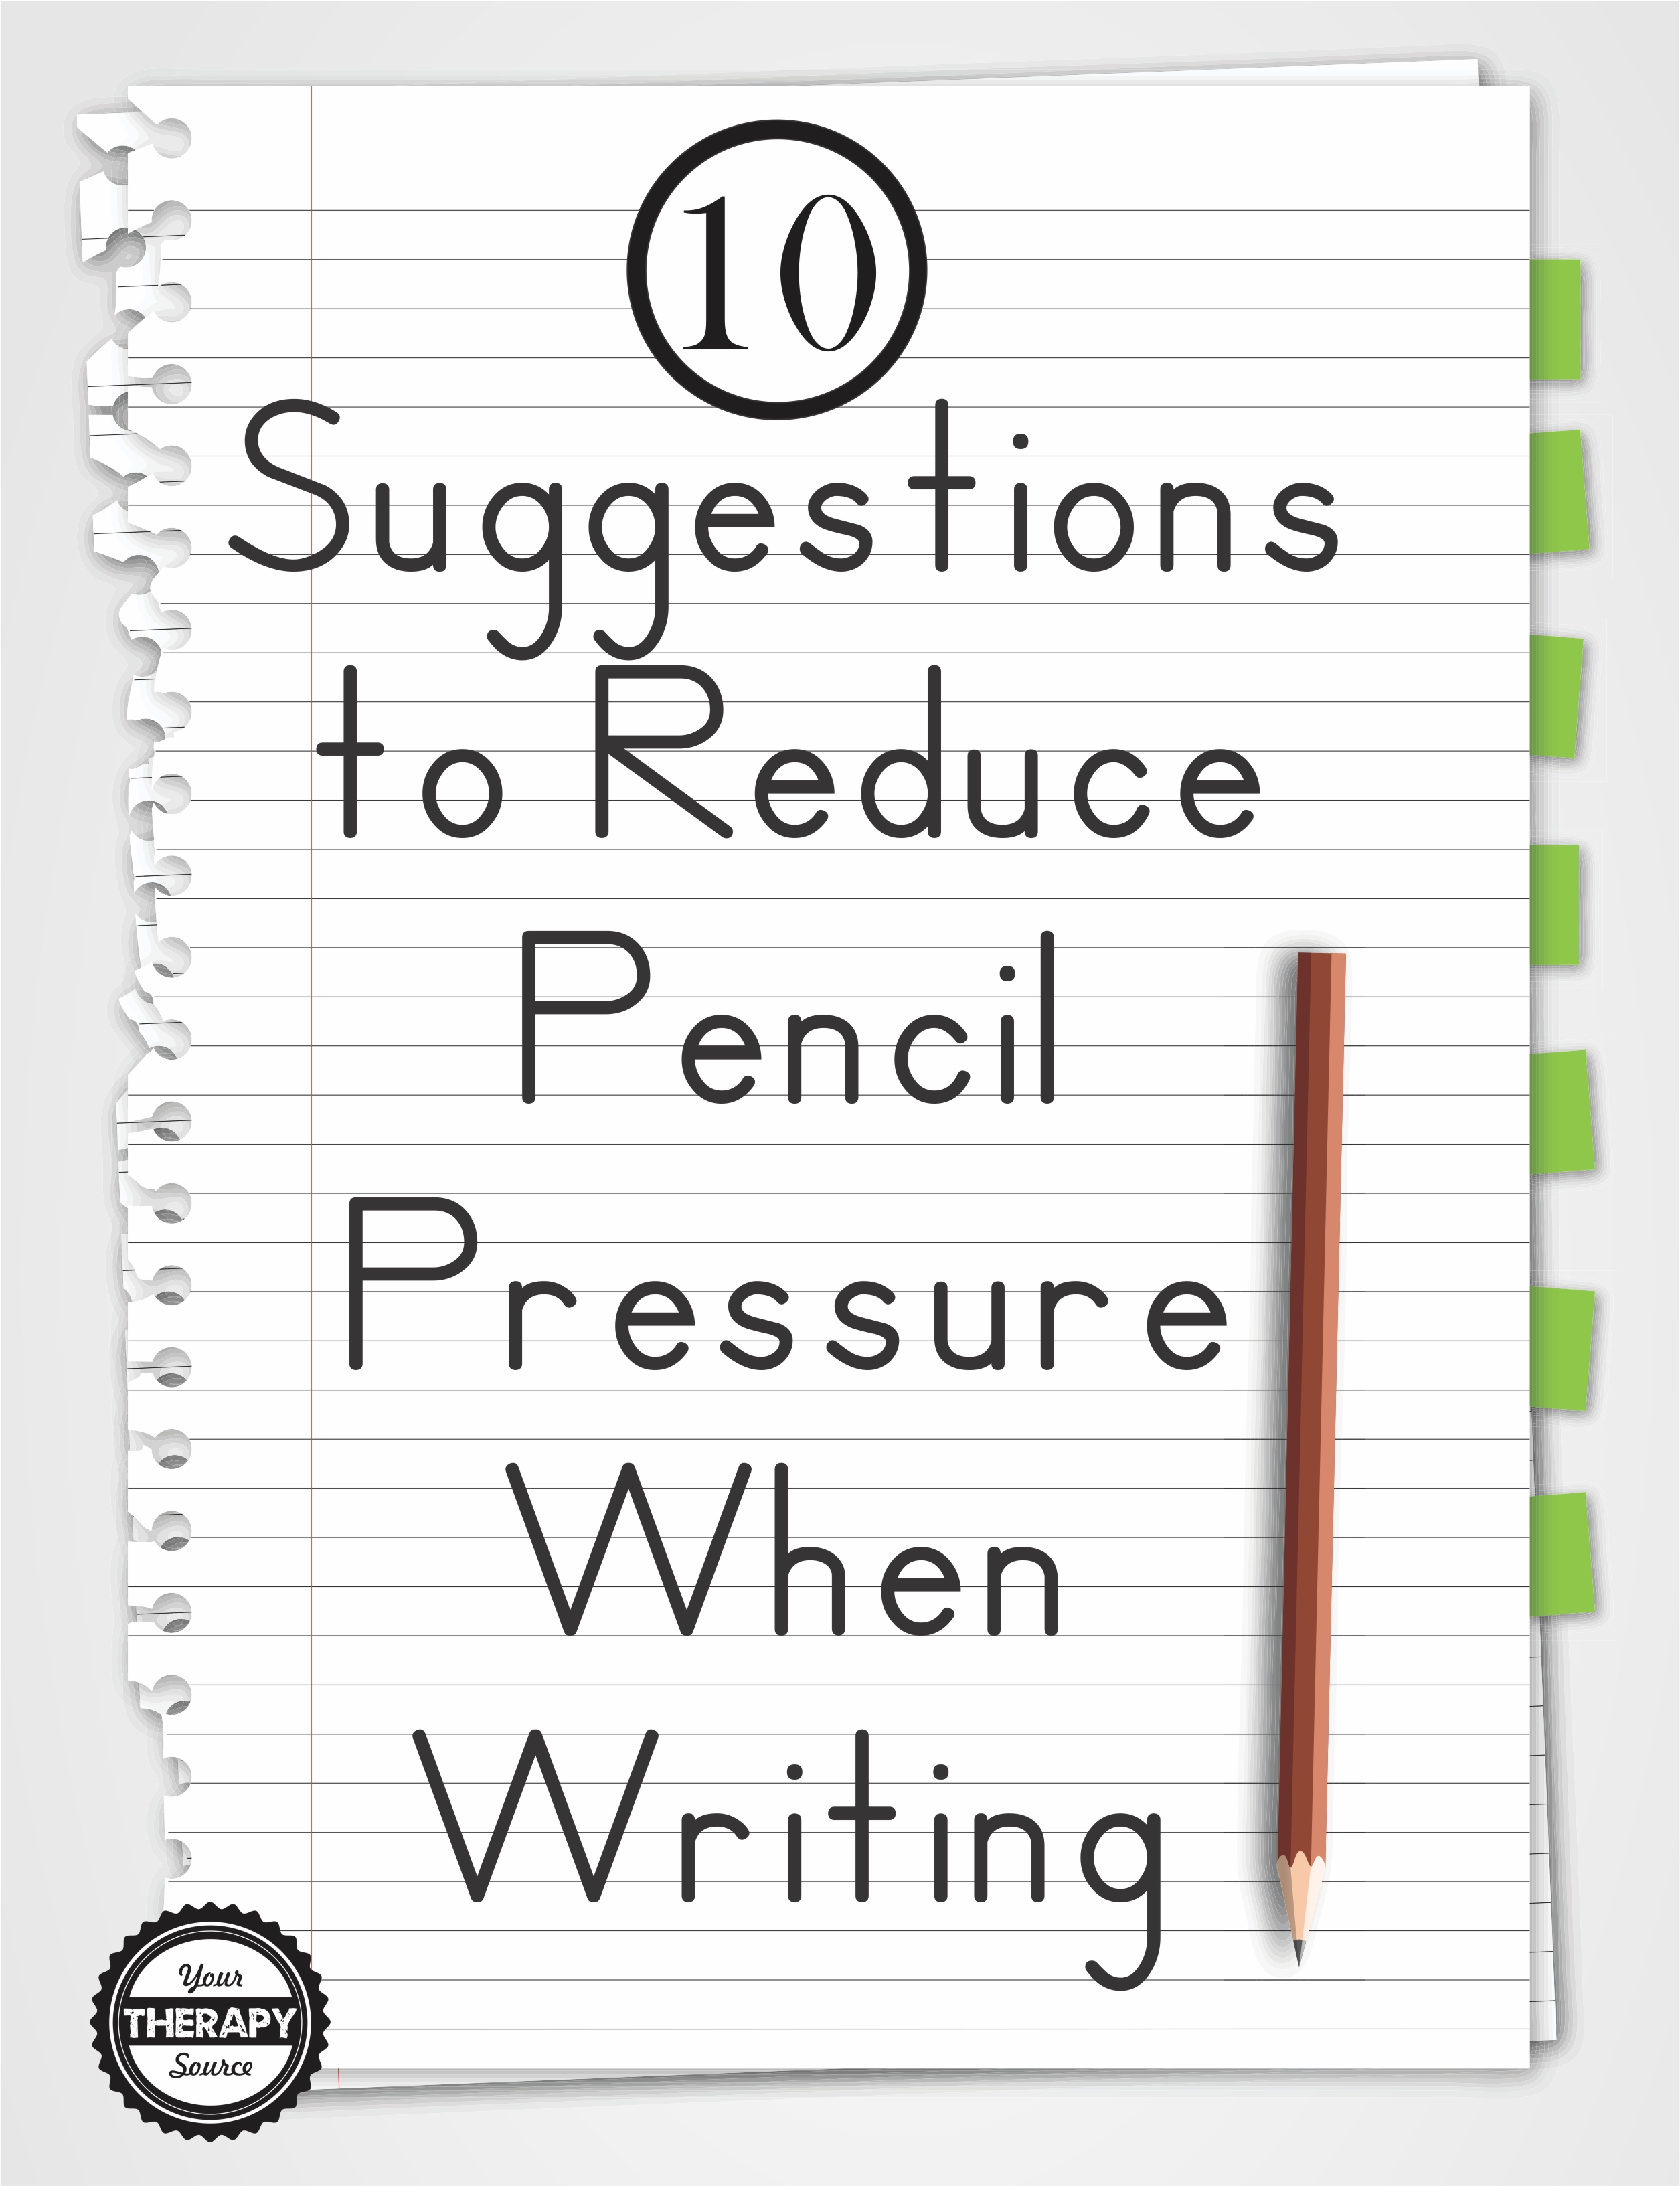 10 Suggestions To Reduce Pencil Pressure When Writing